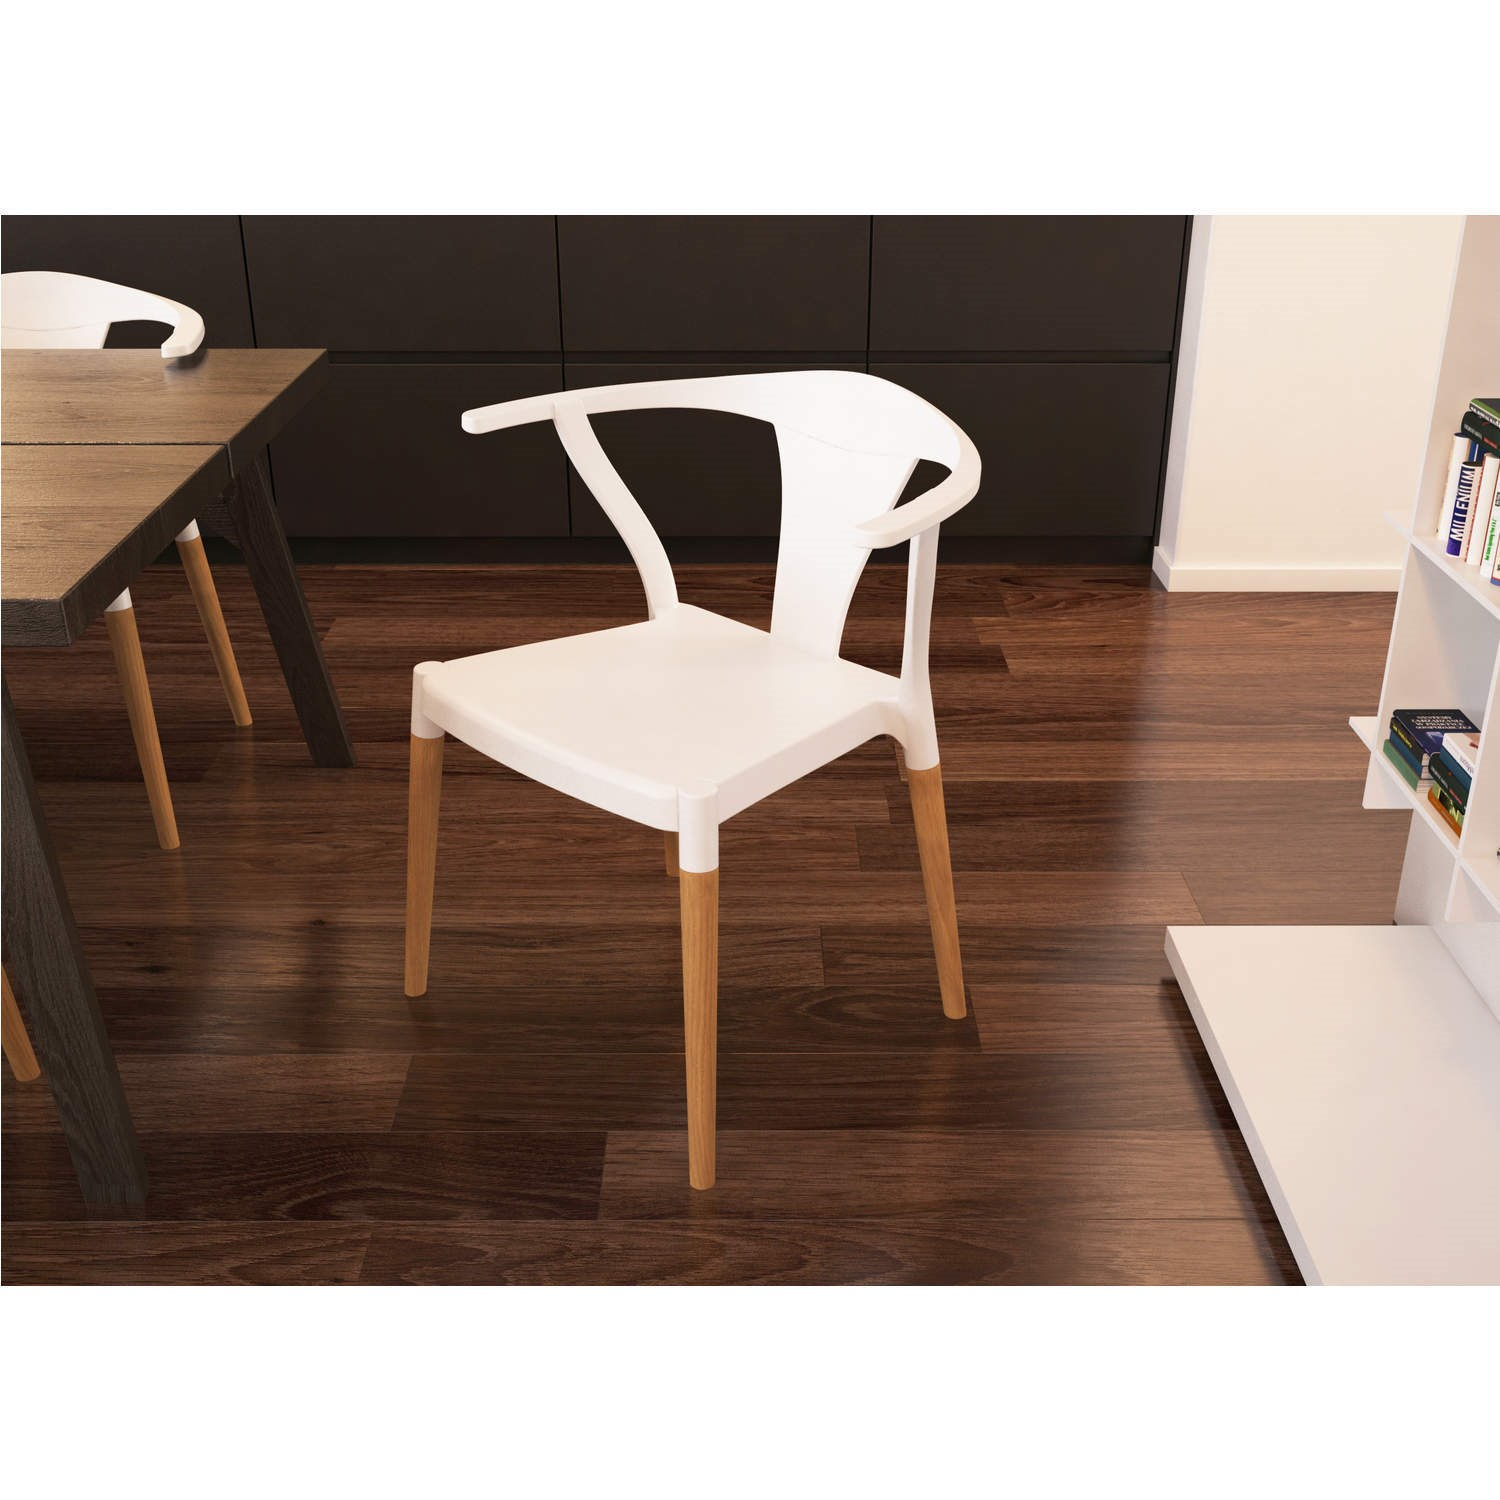 White Flat Wishbone Chair With Wooden Legs in Beech PW 035  : showimage from www.ebay.co.uk size 1500 x 1500 jpeg 210kB